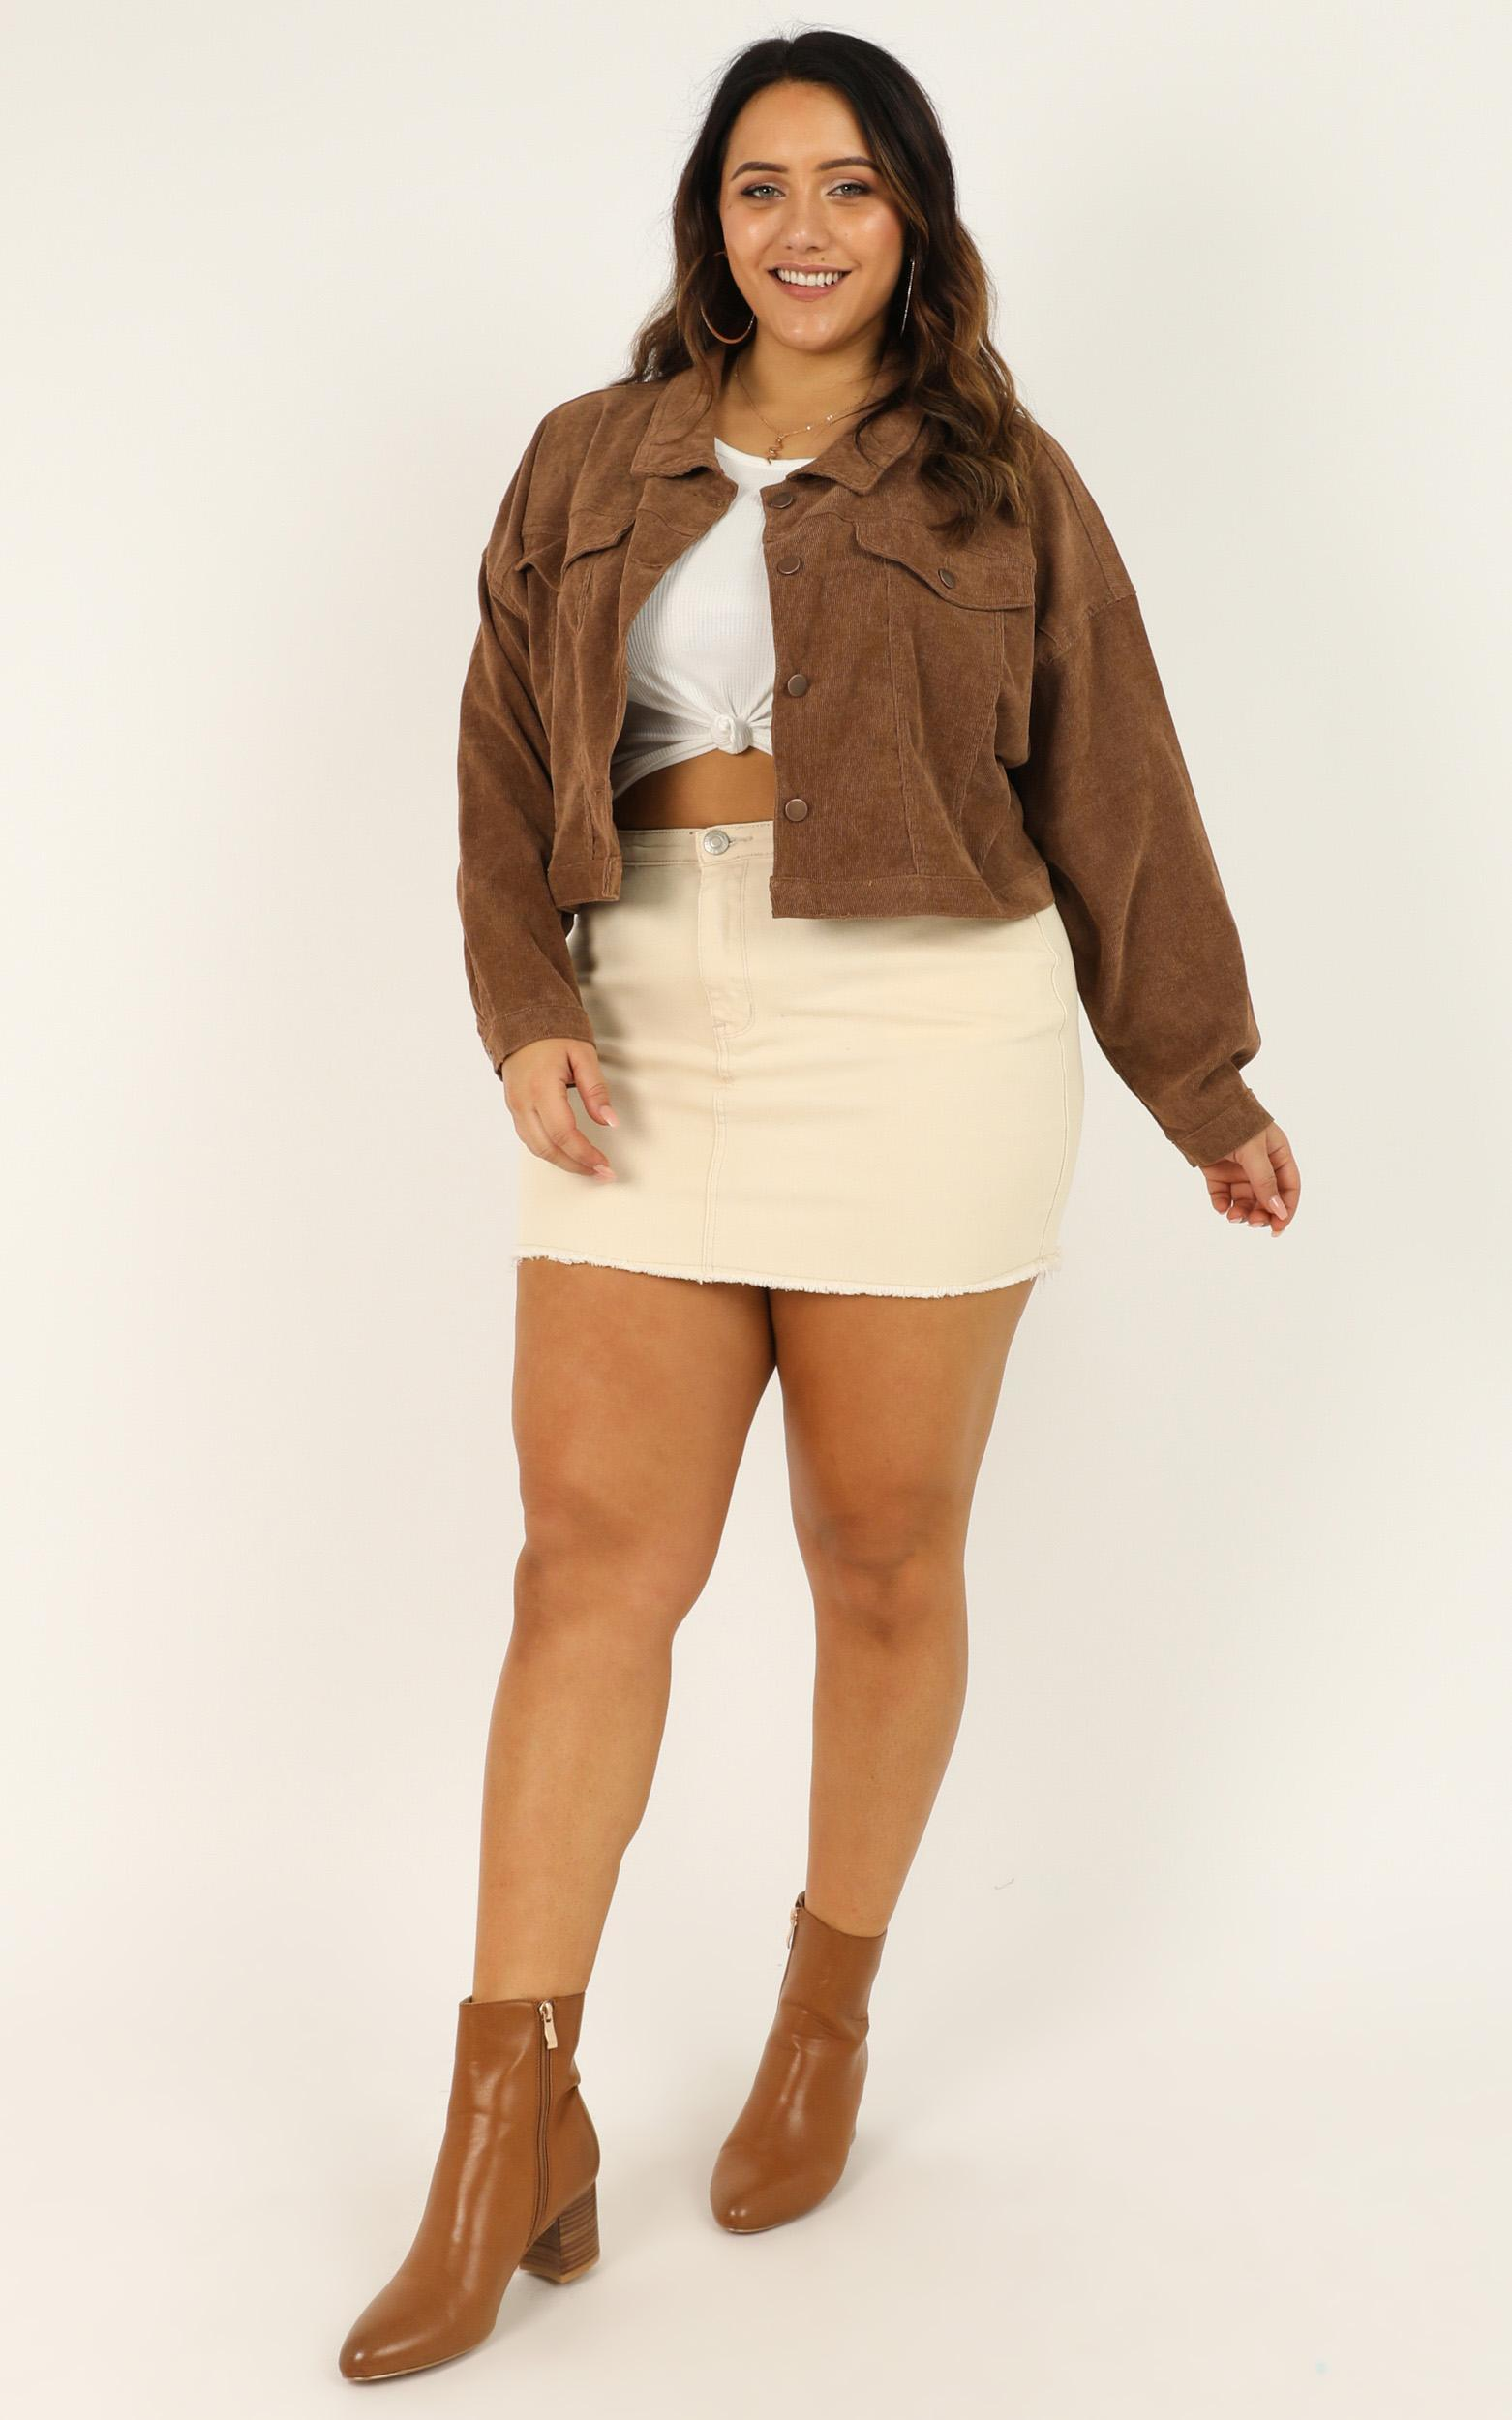 Quiet Cause Jacket in tan cord - 20 (XXXXL), Tan, hi-res image number null